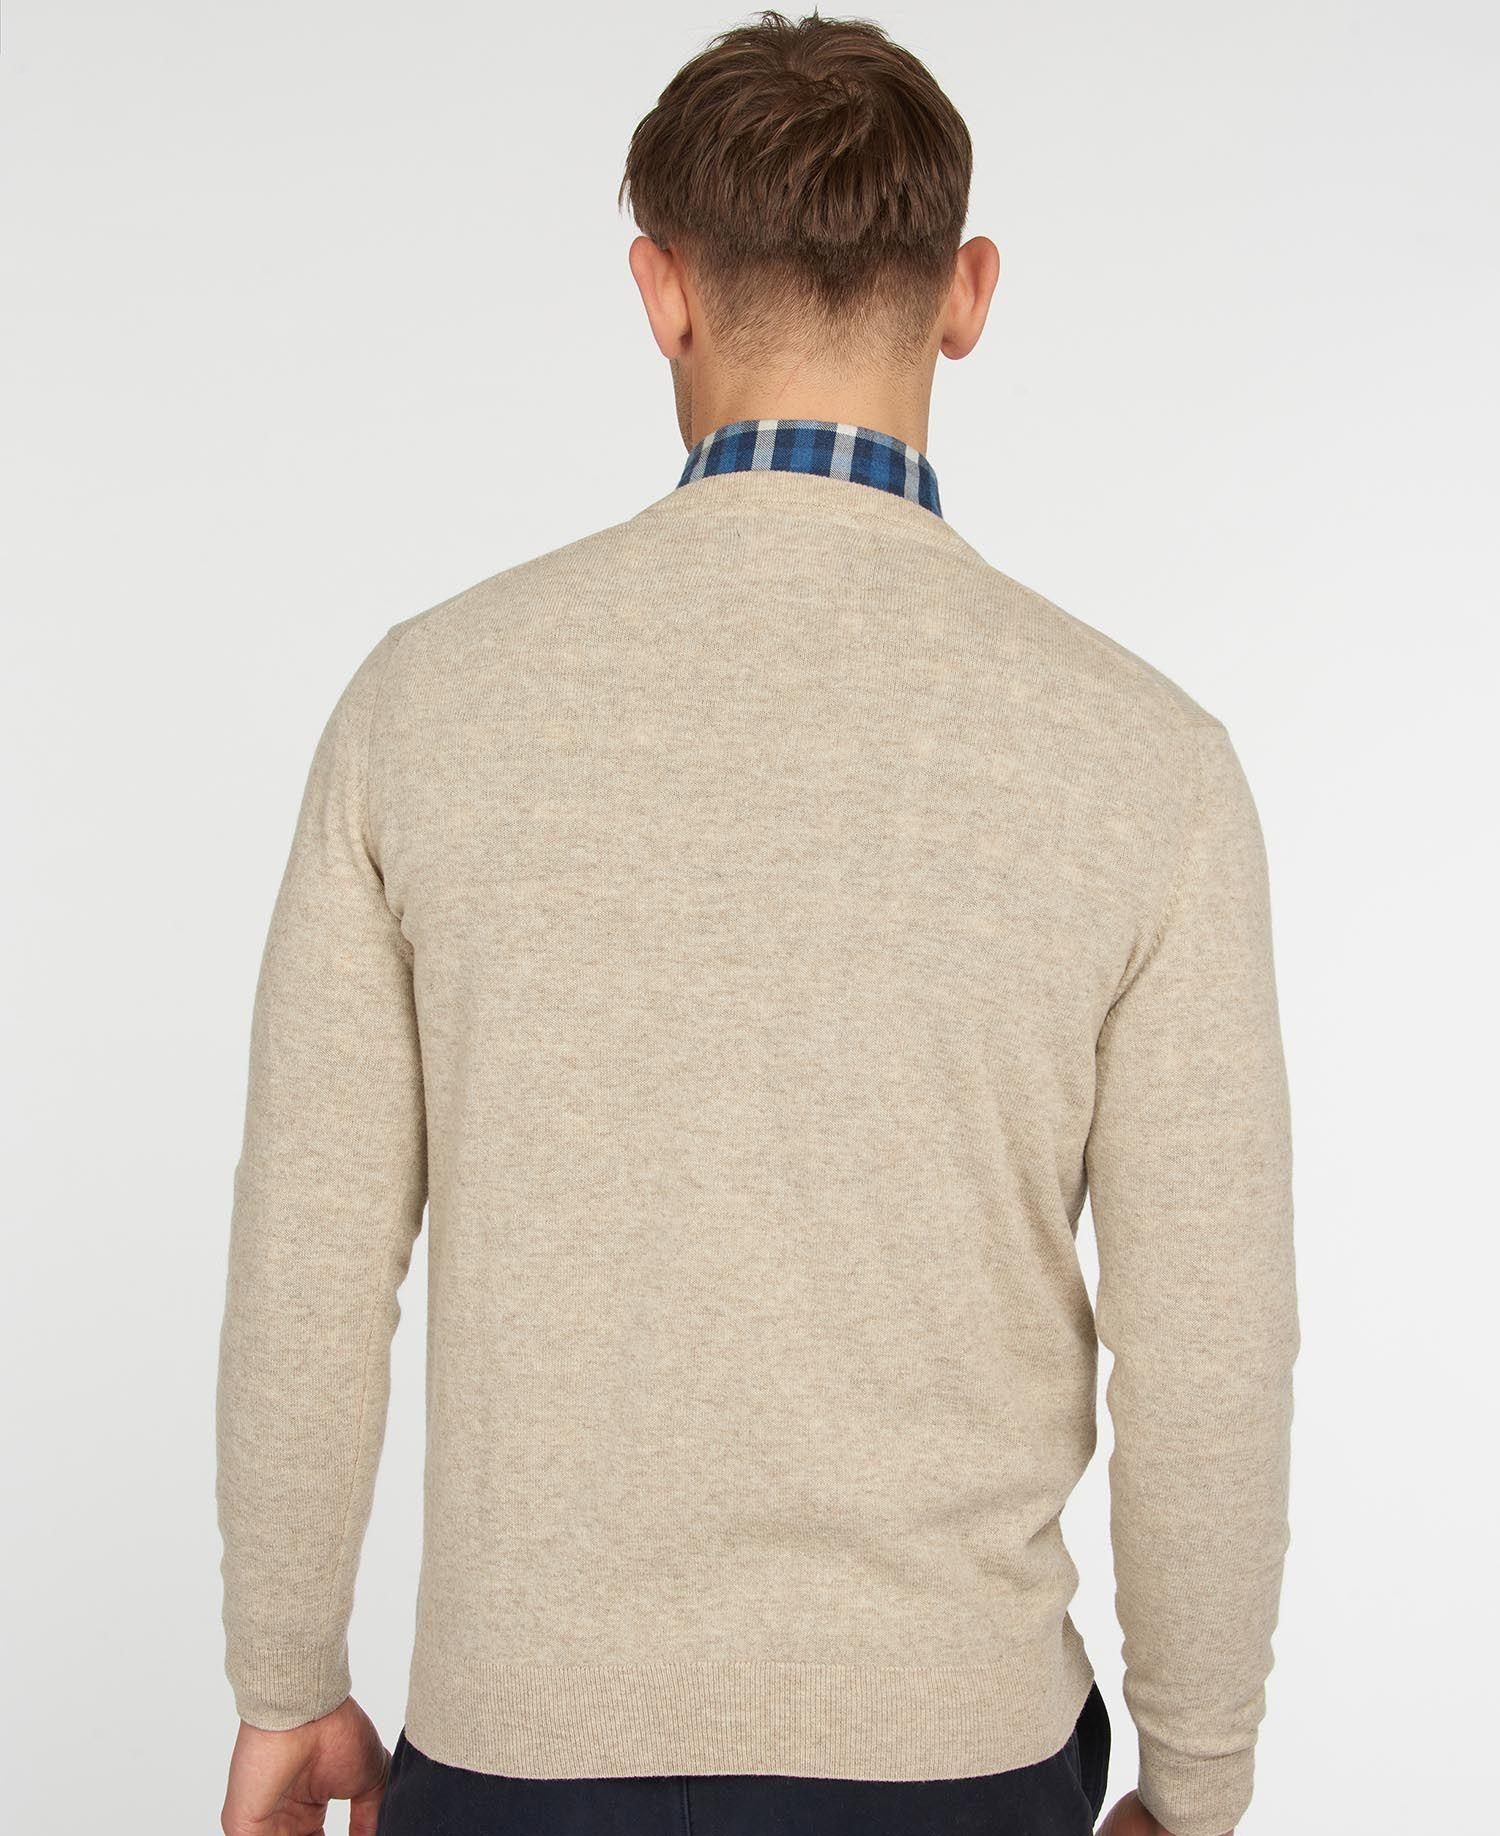 Mkn0341be94 aw21 back model 1